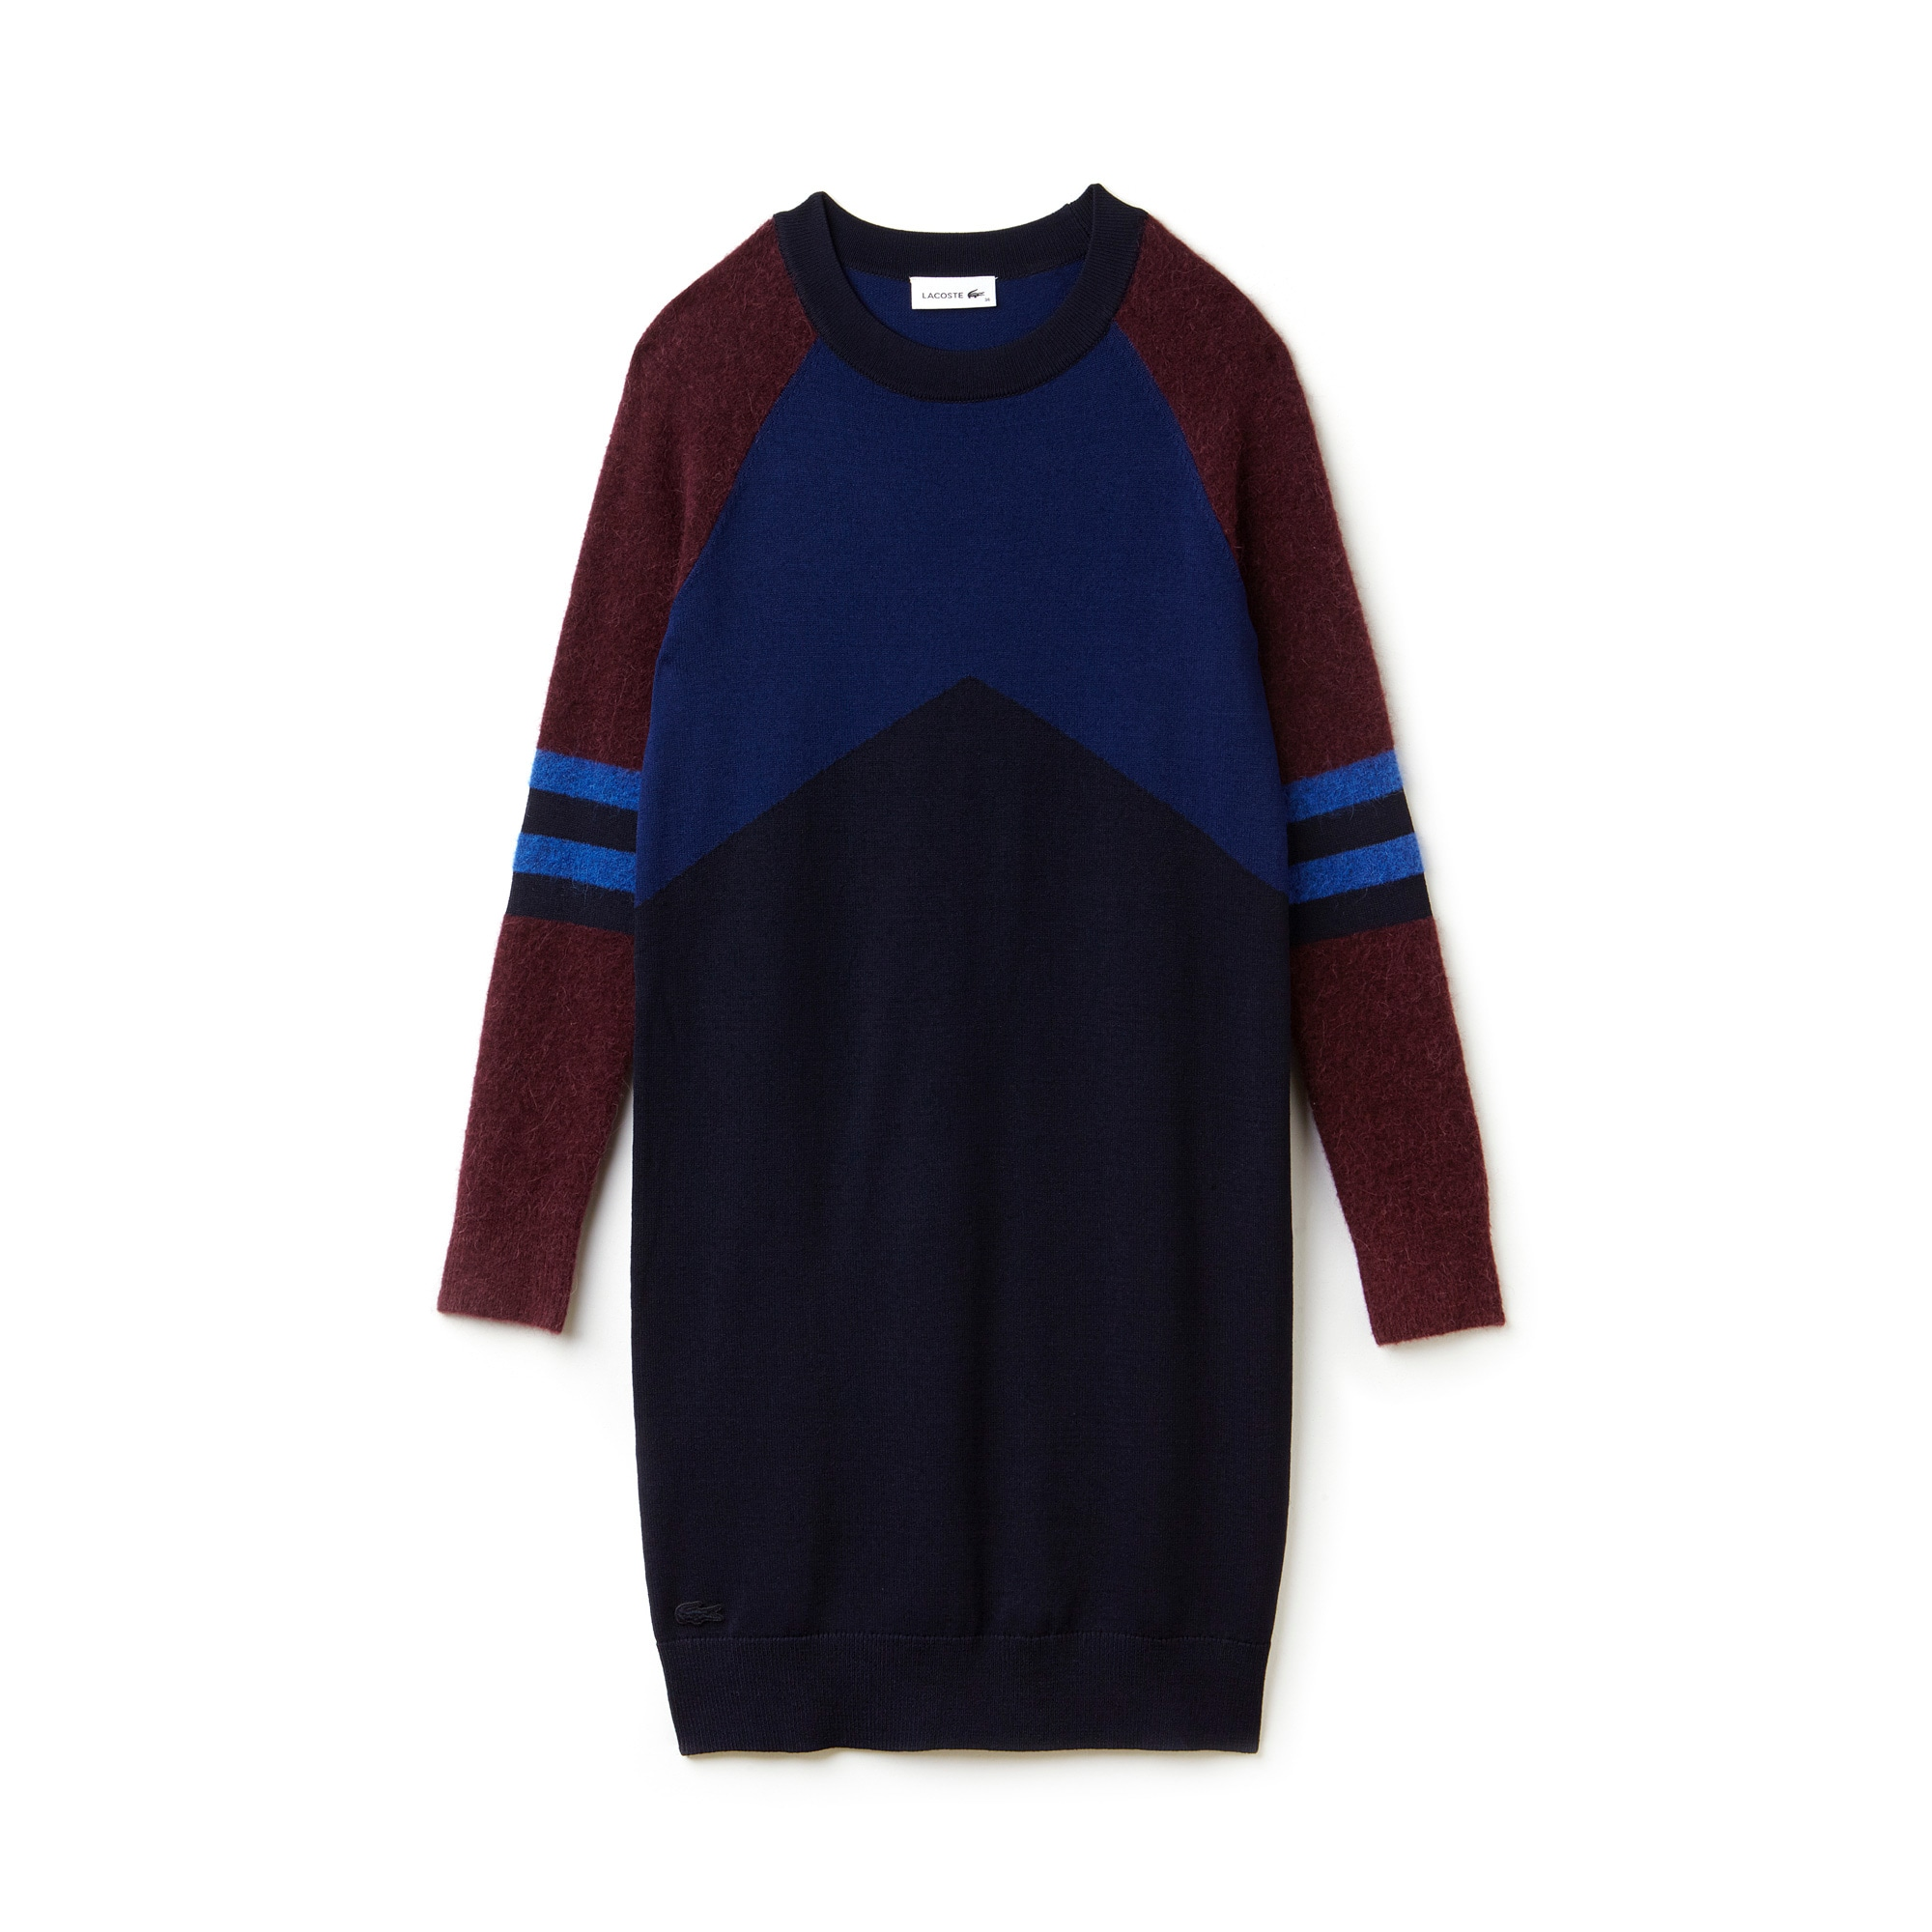 Women's Stretch Wool Jersey Colorblock Sweater Dress